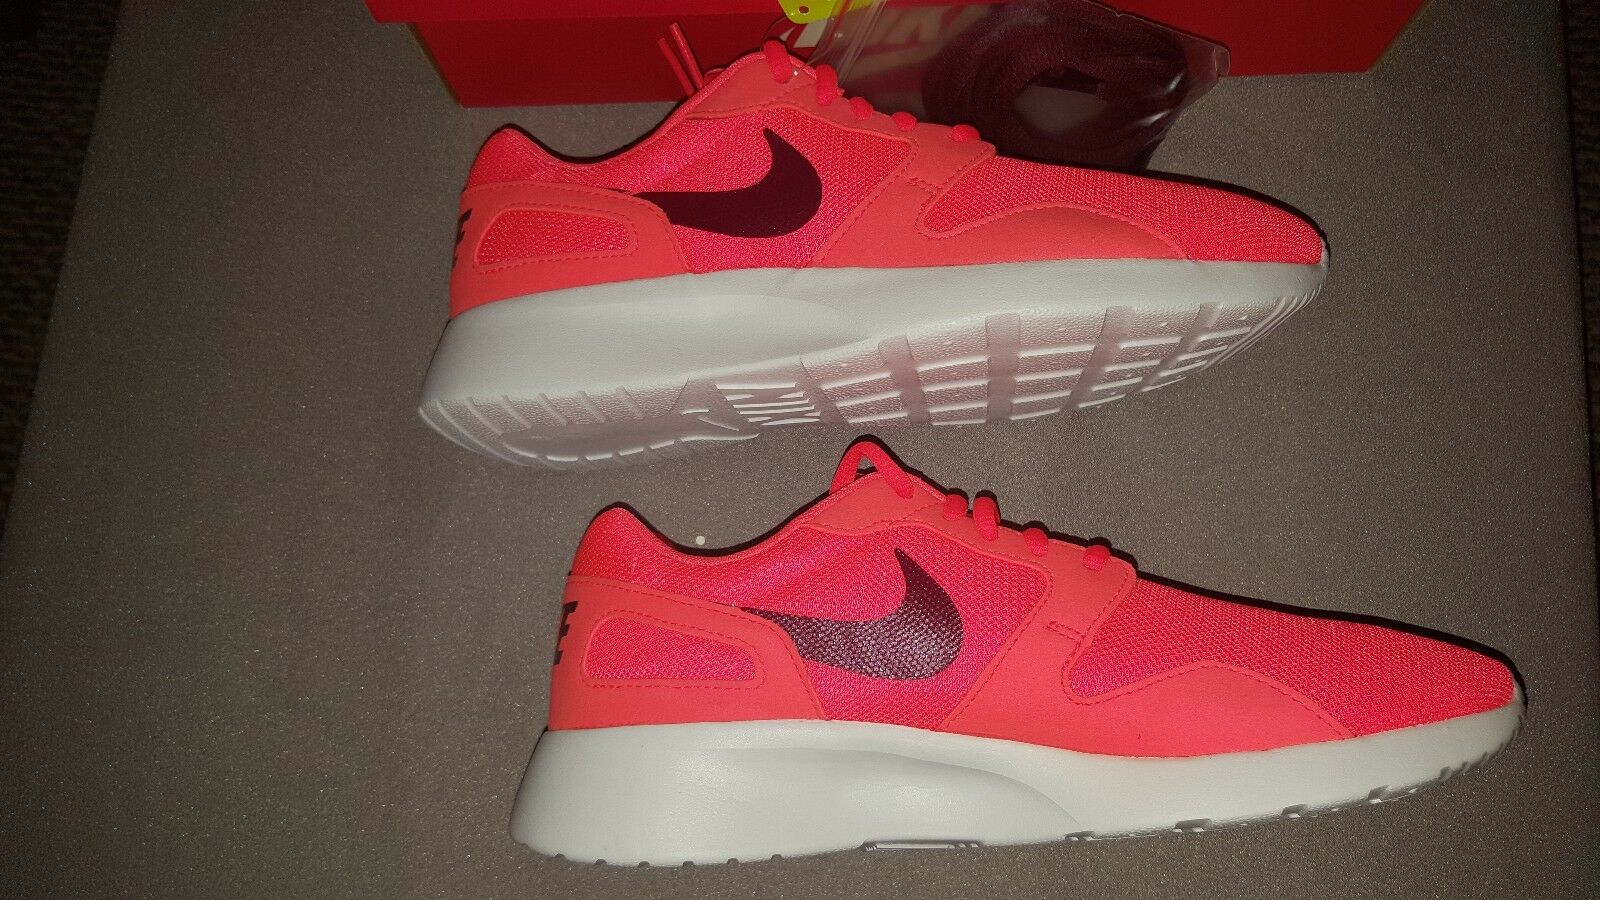 NIKE KAISHI CRIMSON GARNET WHITE 654845 661 WOMENS US 8.5 8.5 8.5  NEW IN BOX ea221f